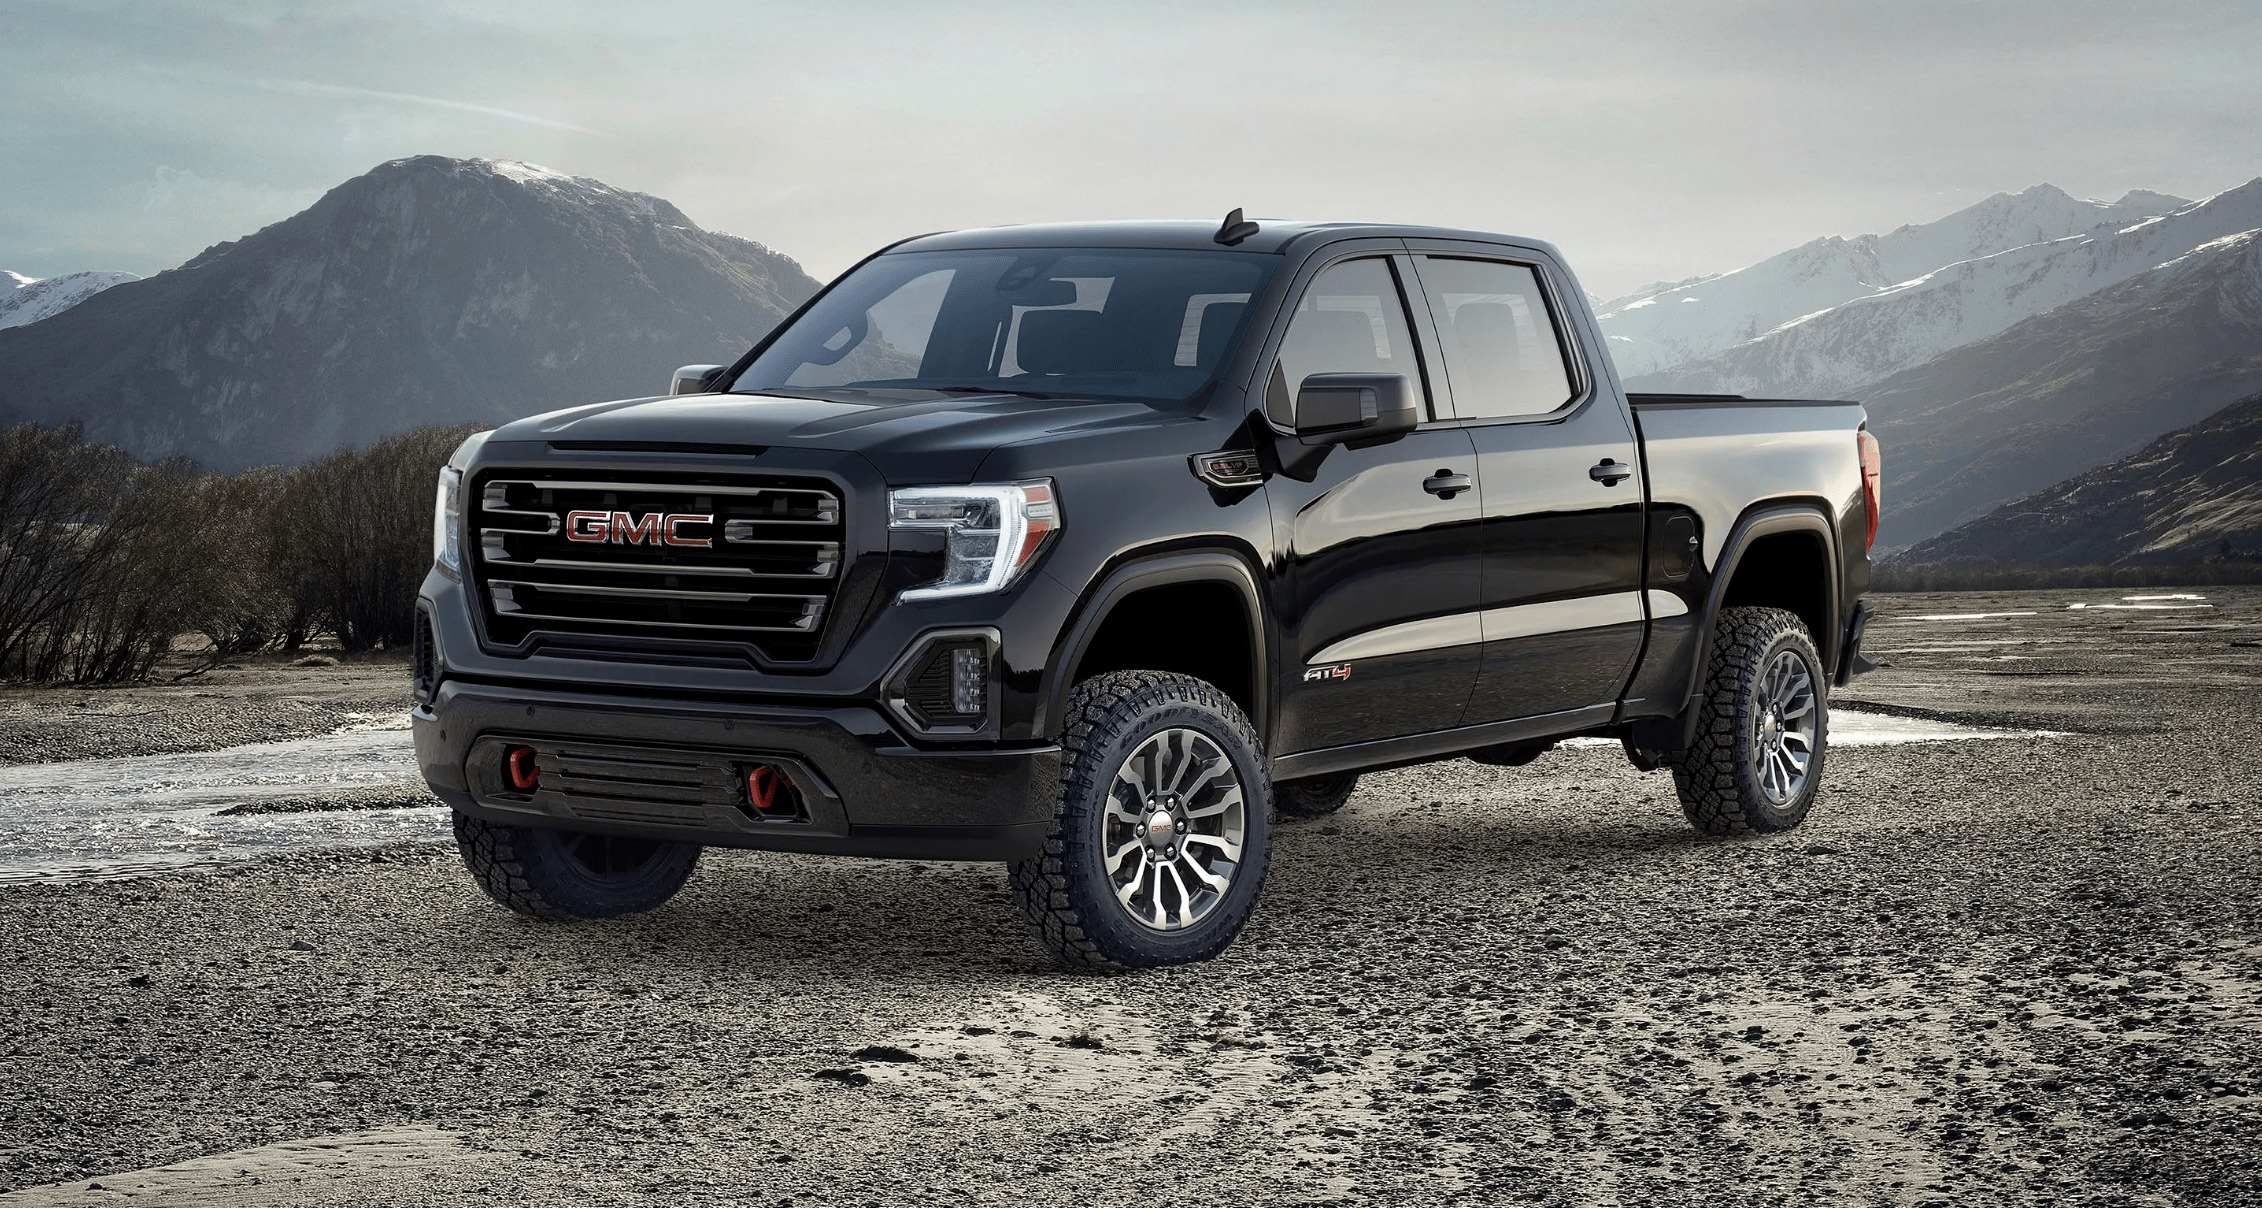 The Sierra AT4 Carbon Pro arrives in Mexico